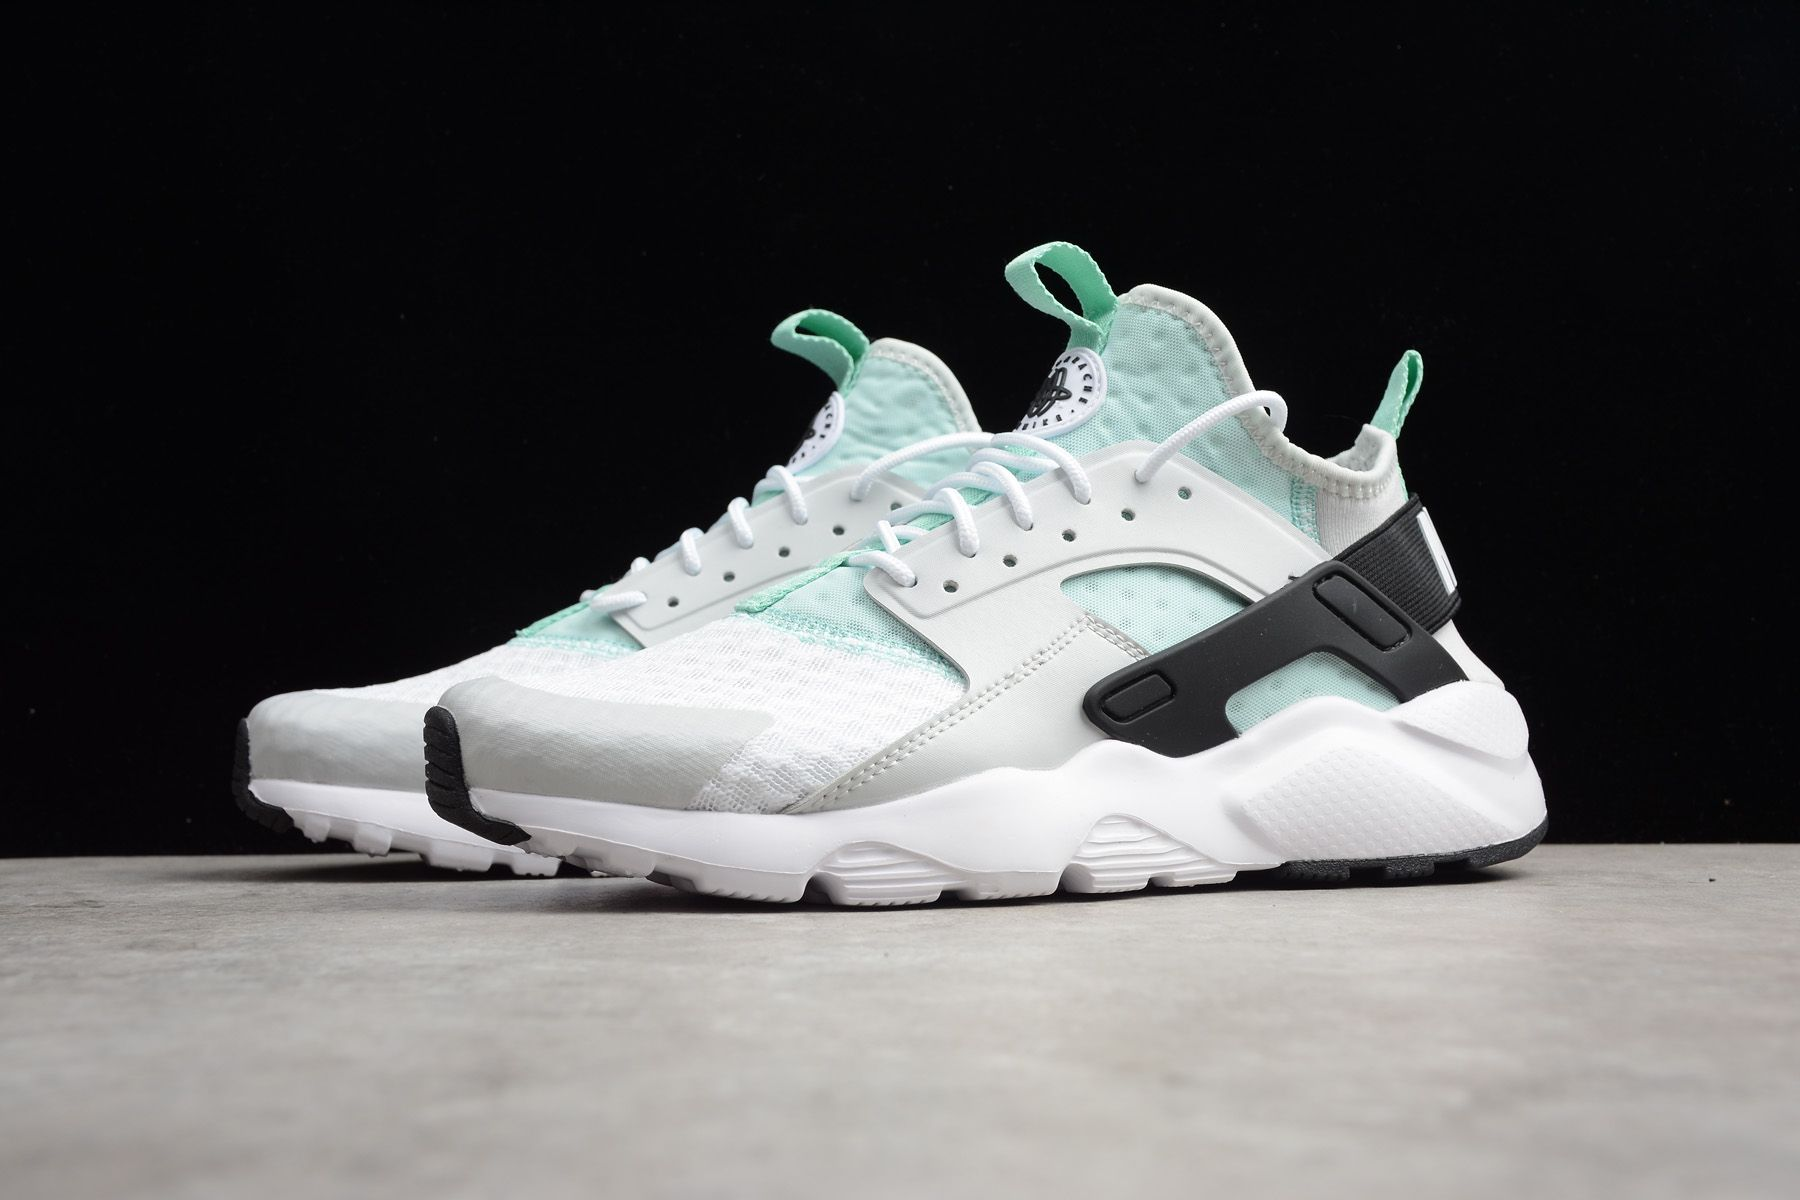 21b0ff08377 2018 Nike Air Huarache Run Ultra Pure Platinum Black-Igloo 819685 ...